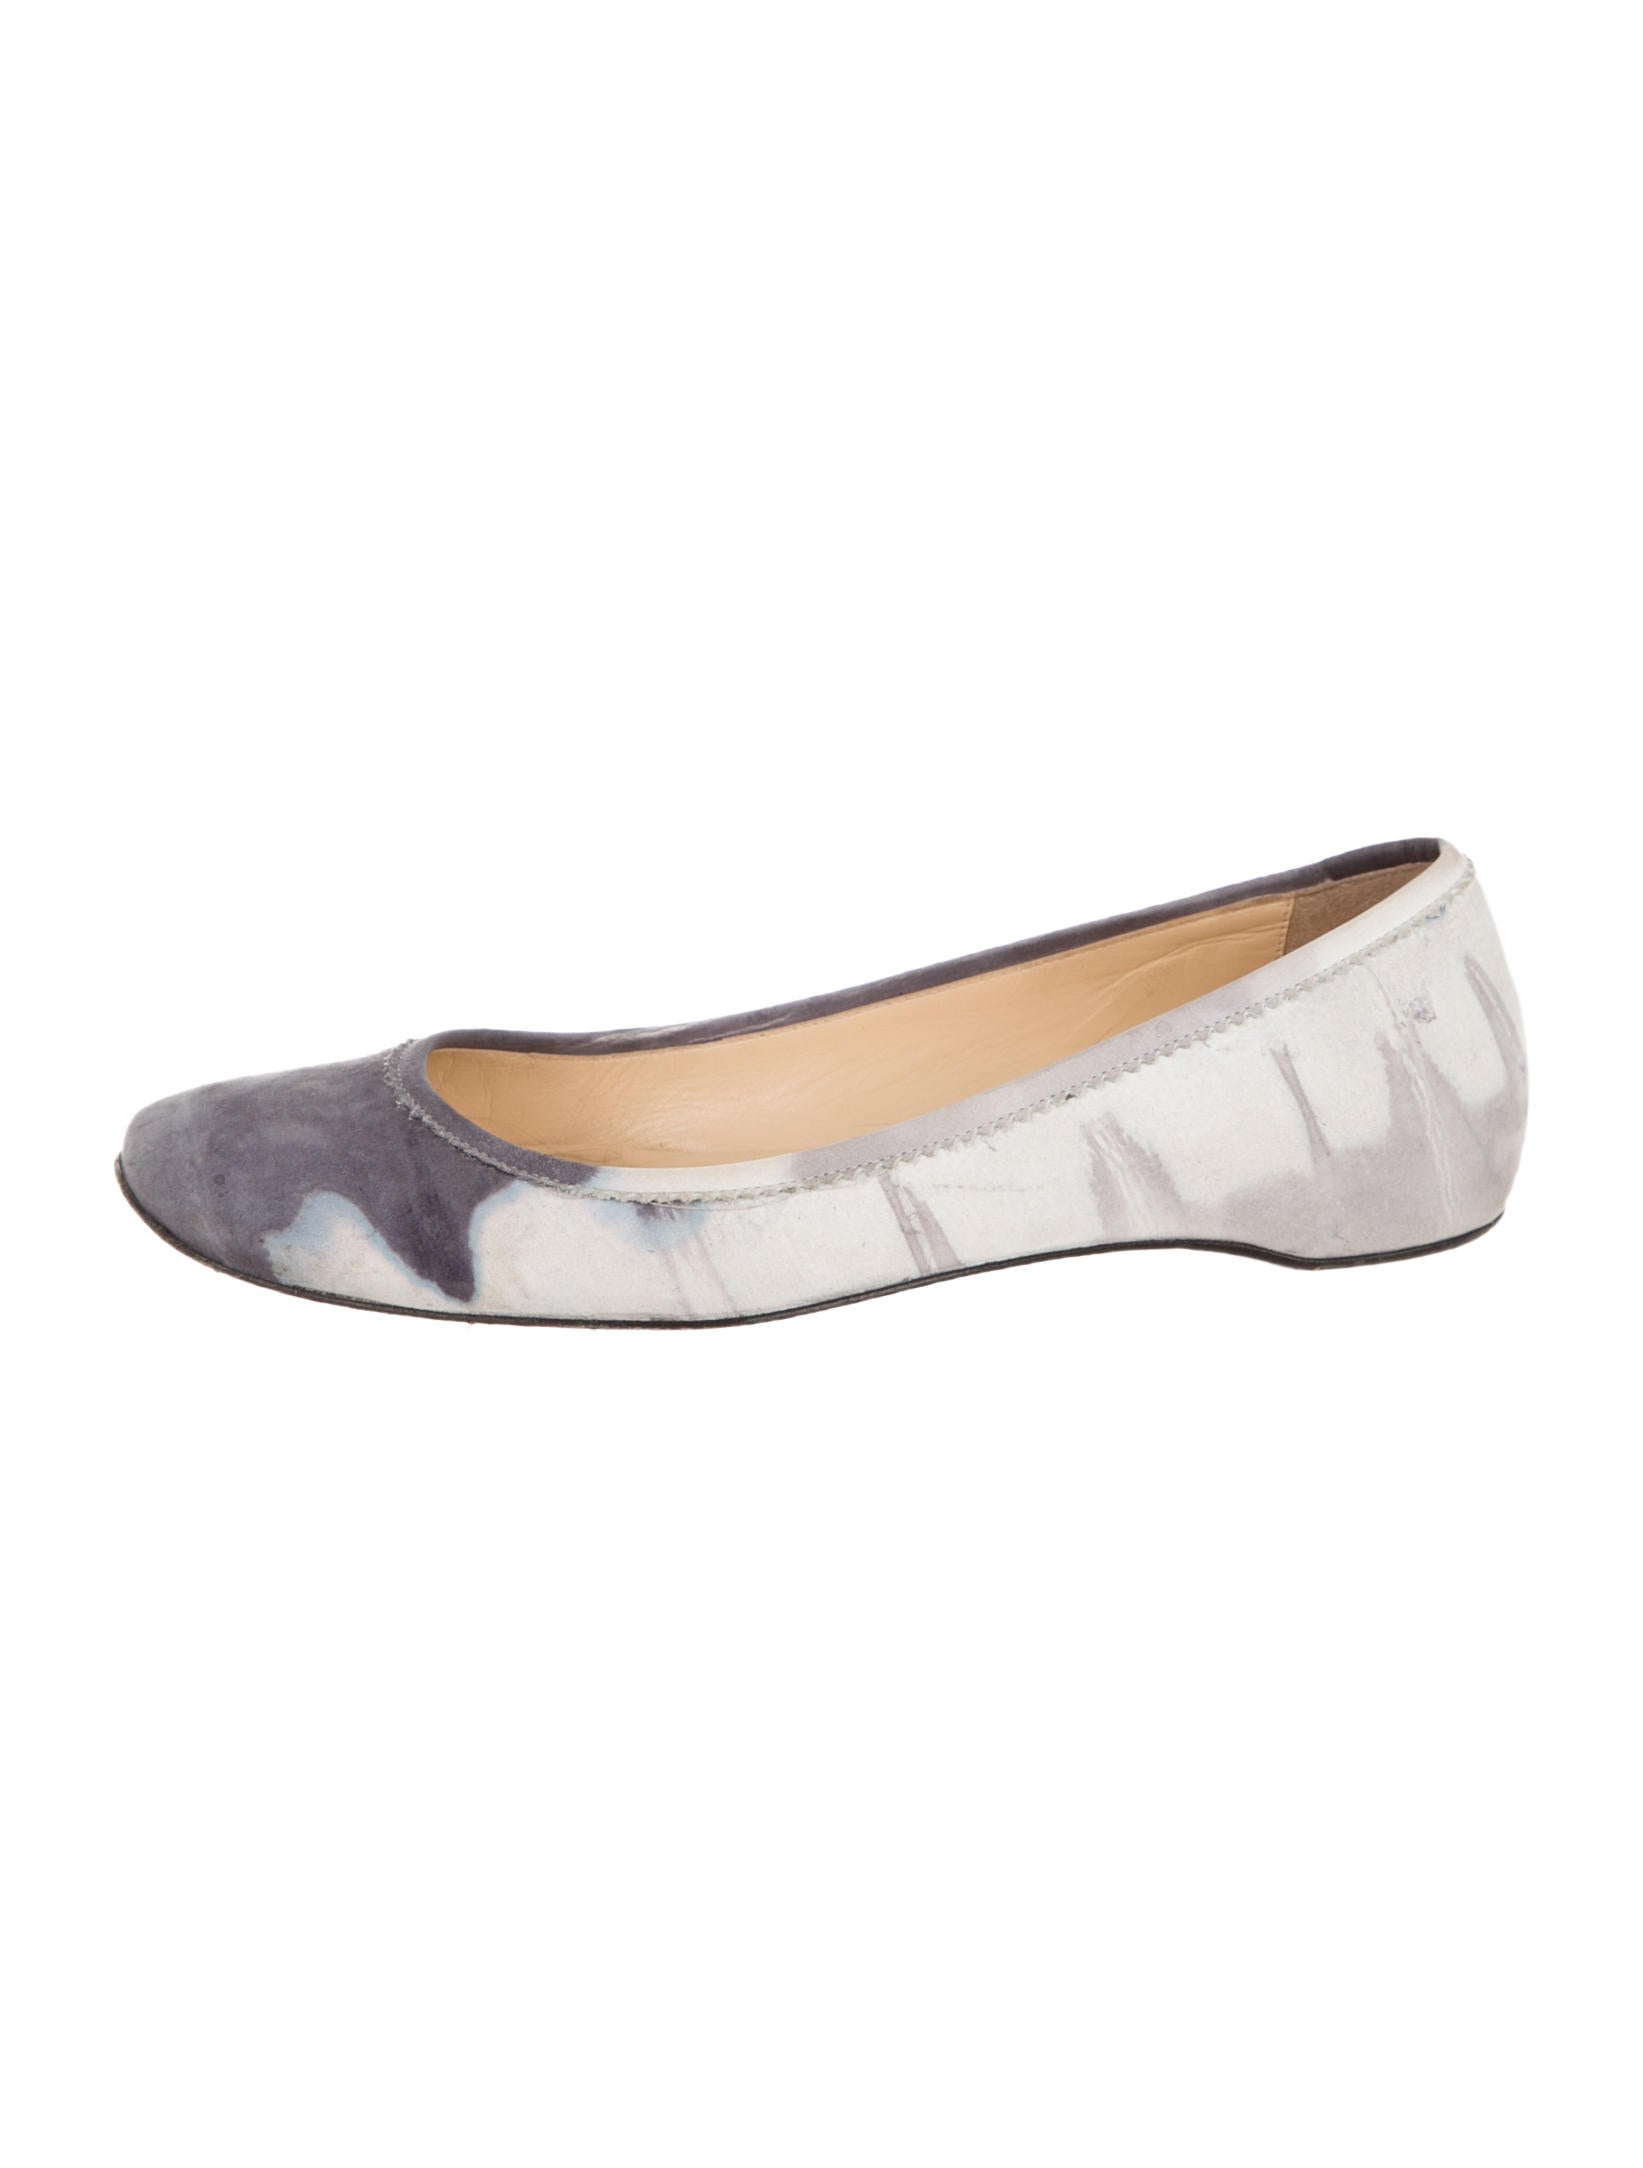 louboutins trainers - christian louboutin square-toe ballerina flats Light blue and grey ...